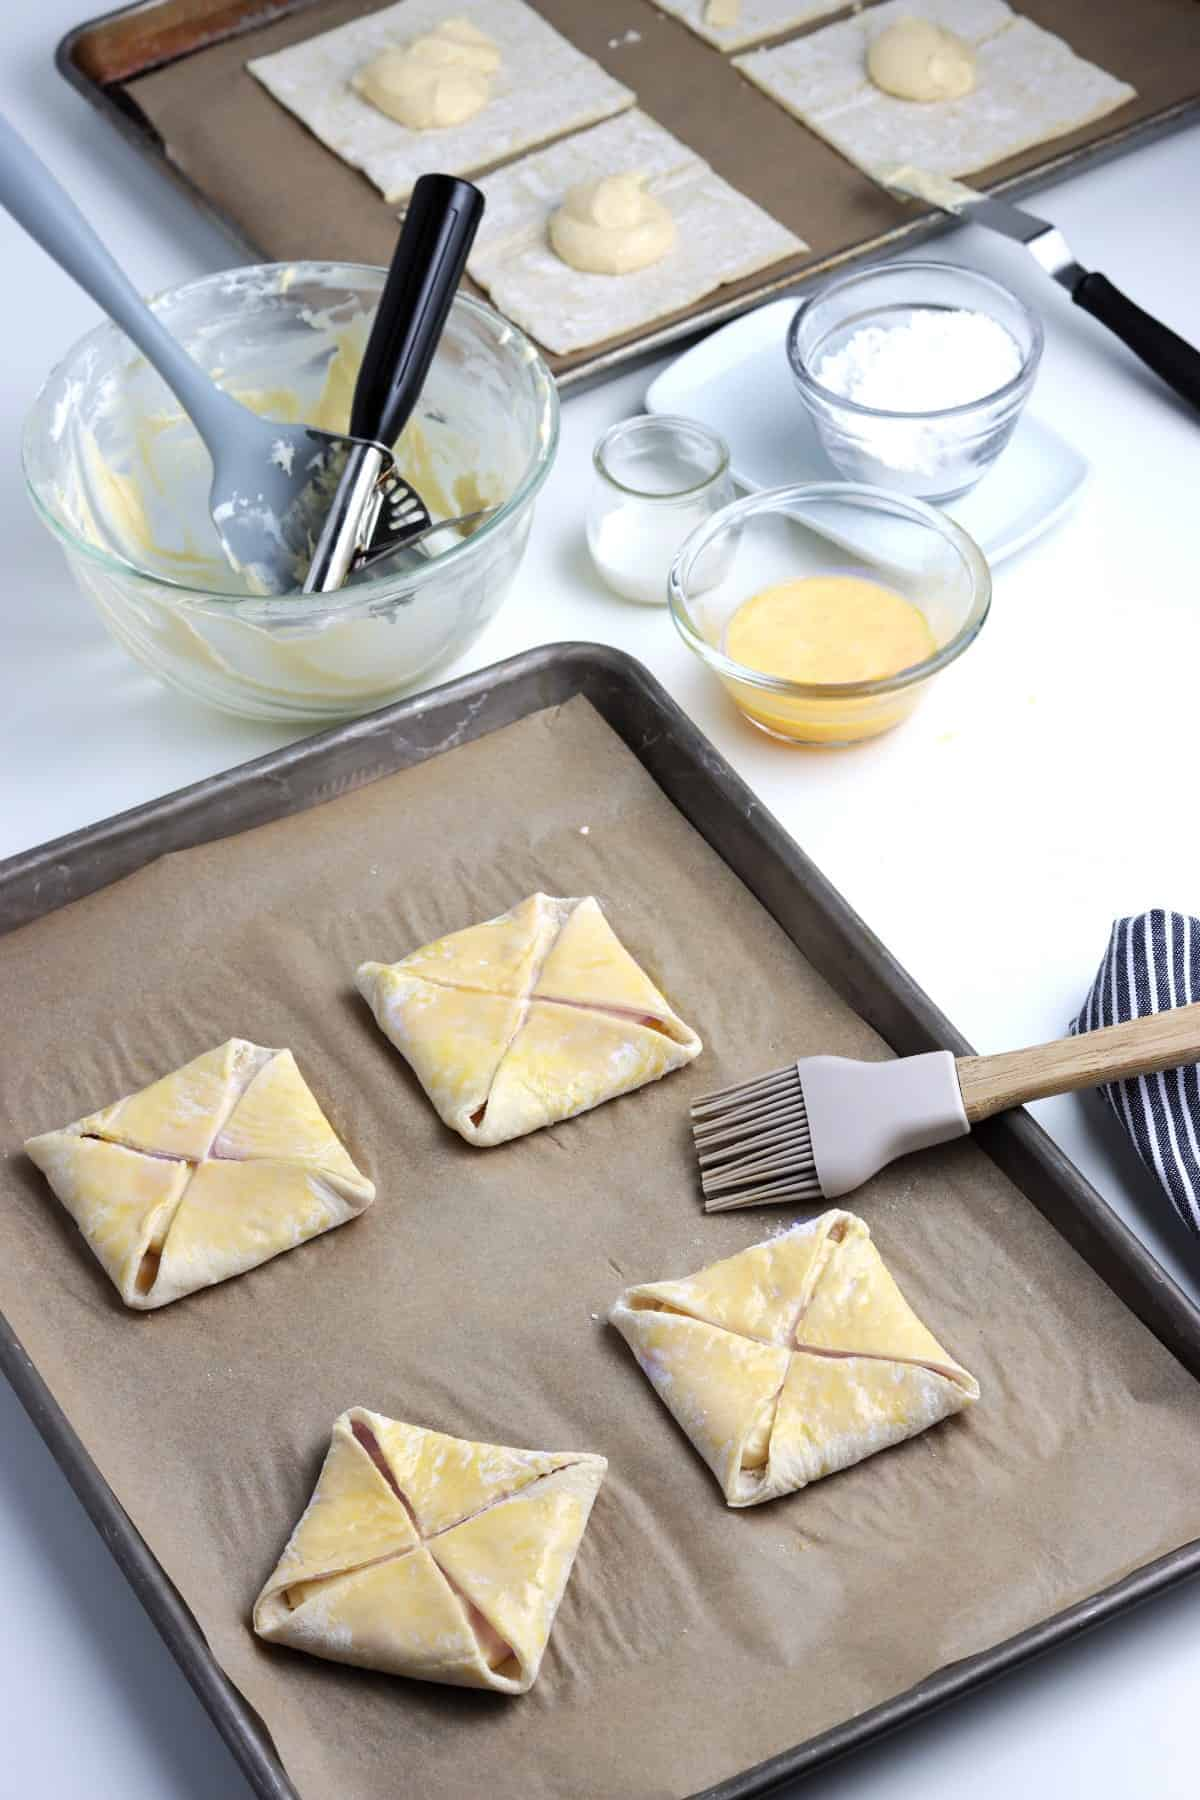 Brushing dairy free cream cheese filled puff pastry on a baking sheet.